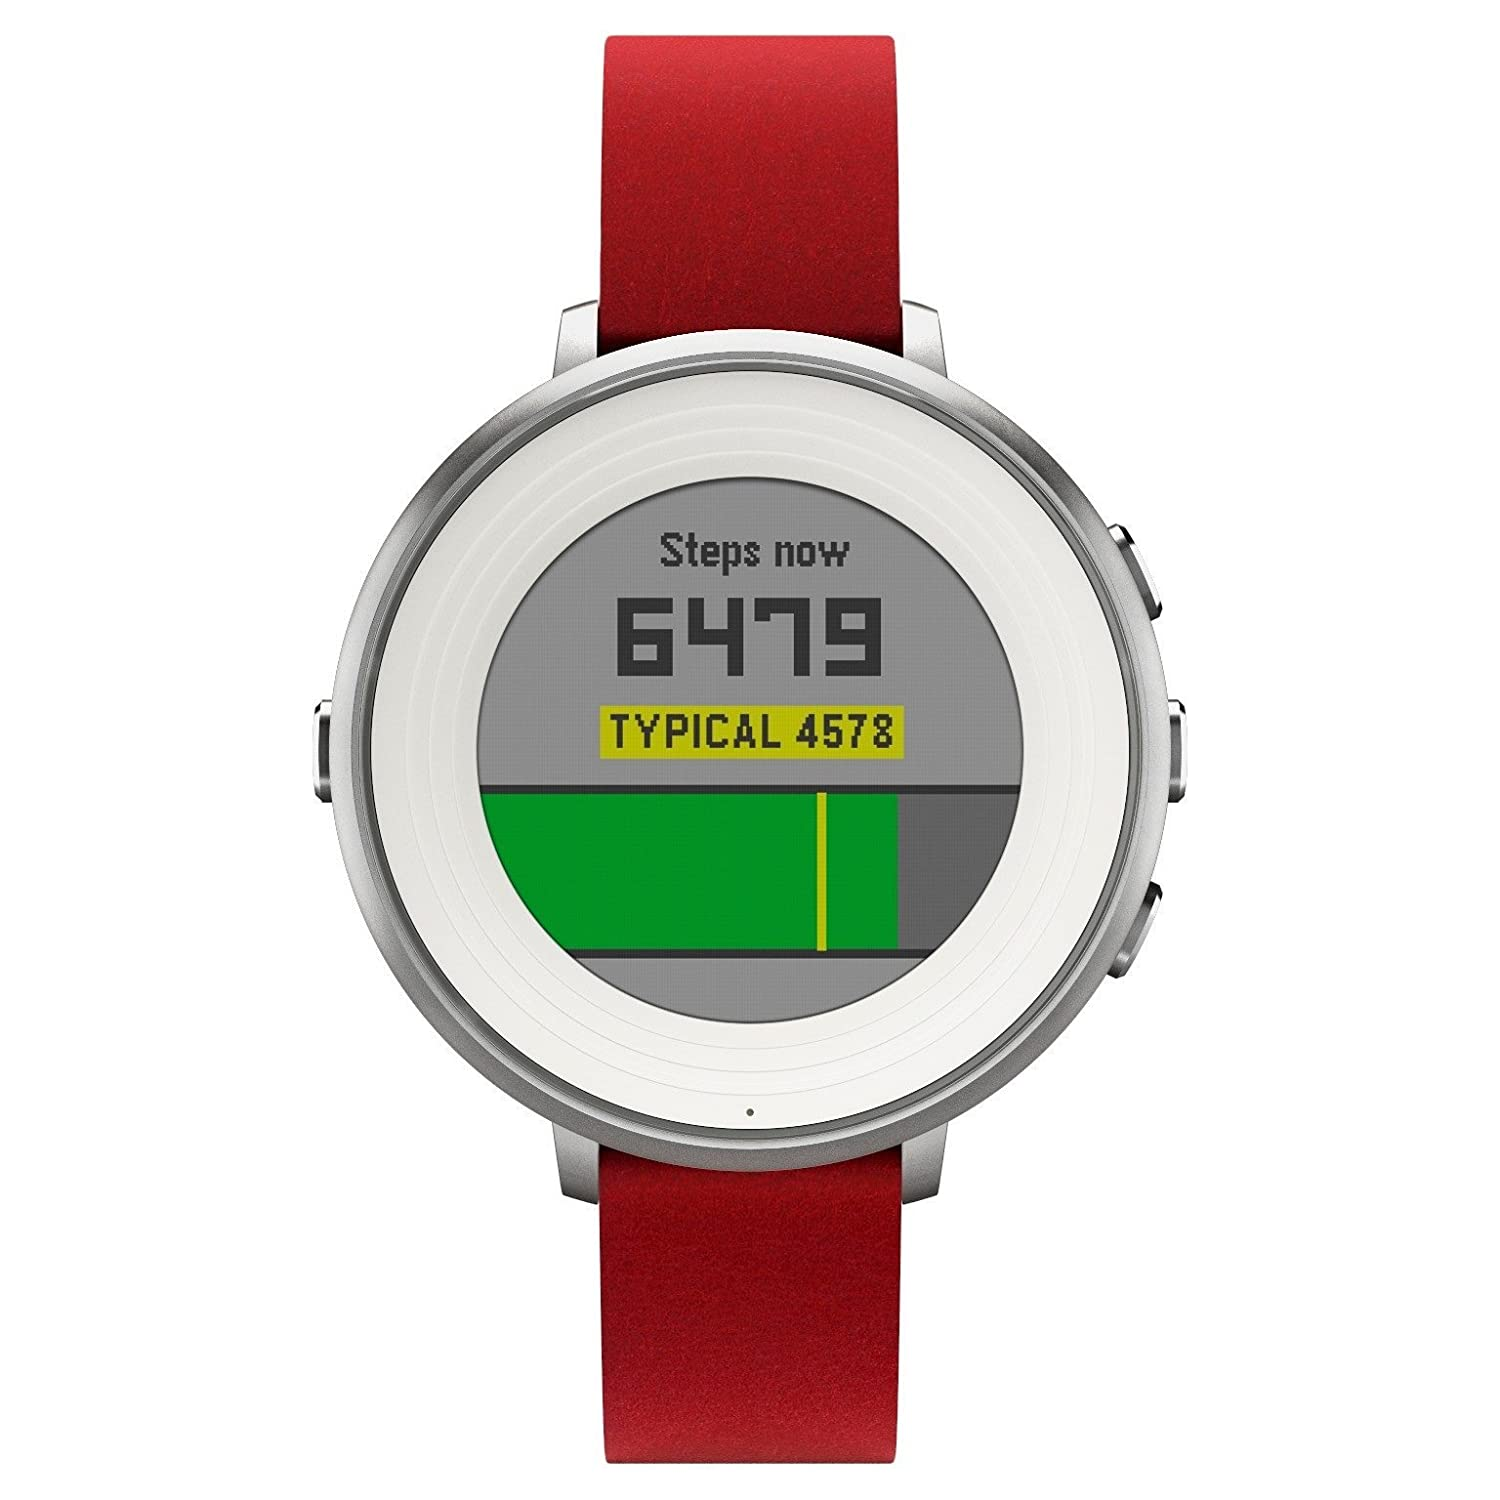 Pebble tiempo redondo 14 mm Smartwatch para Apple/Android ...